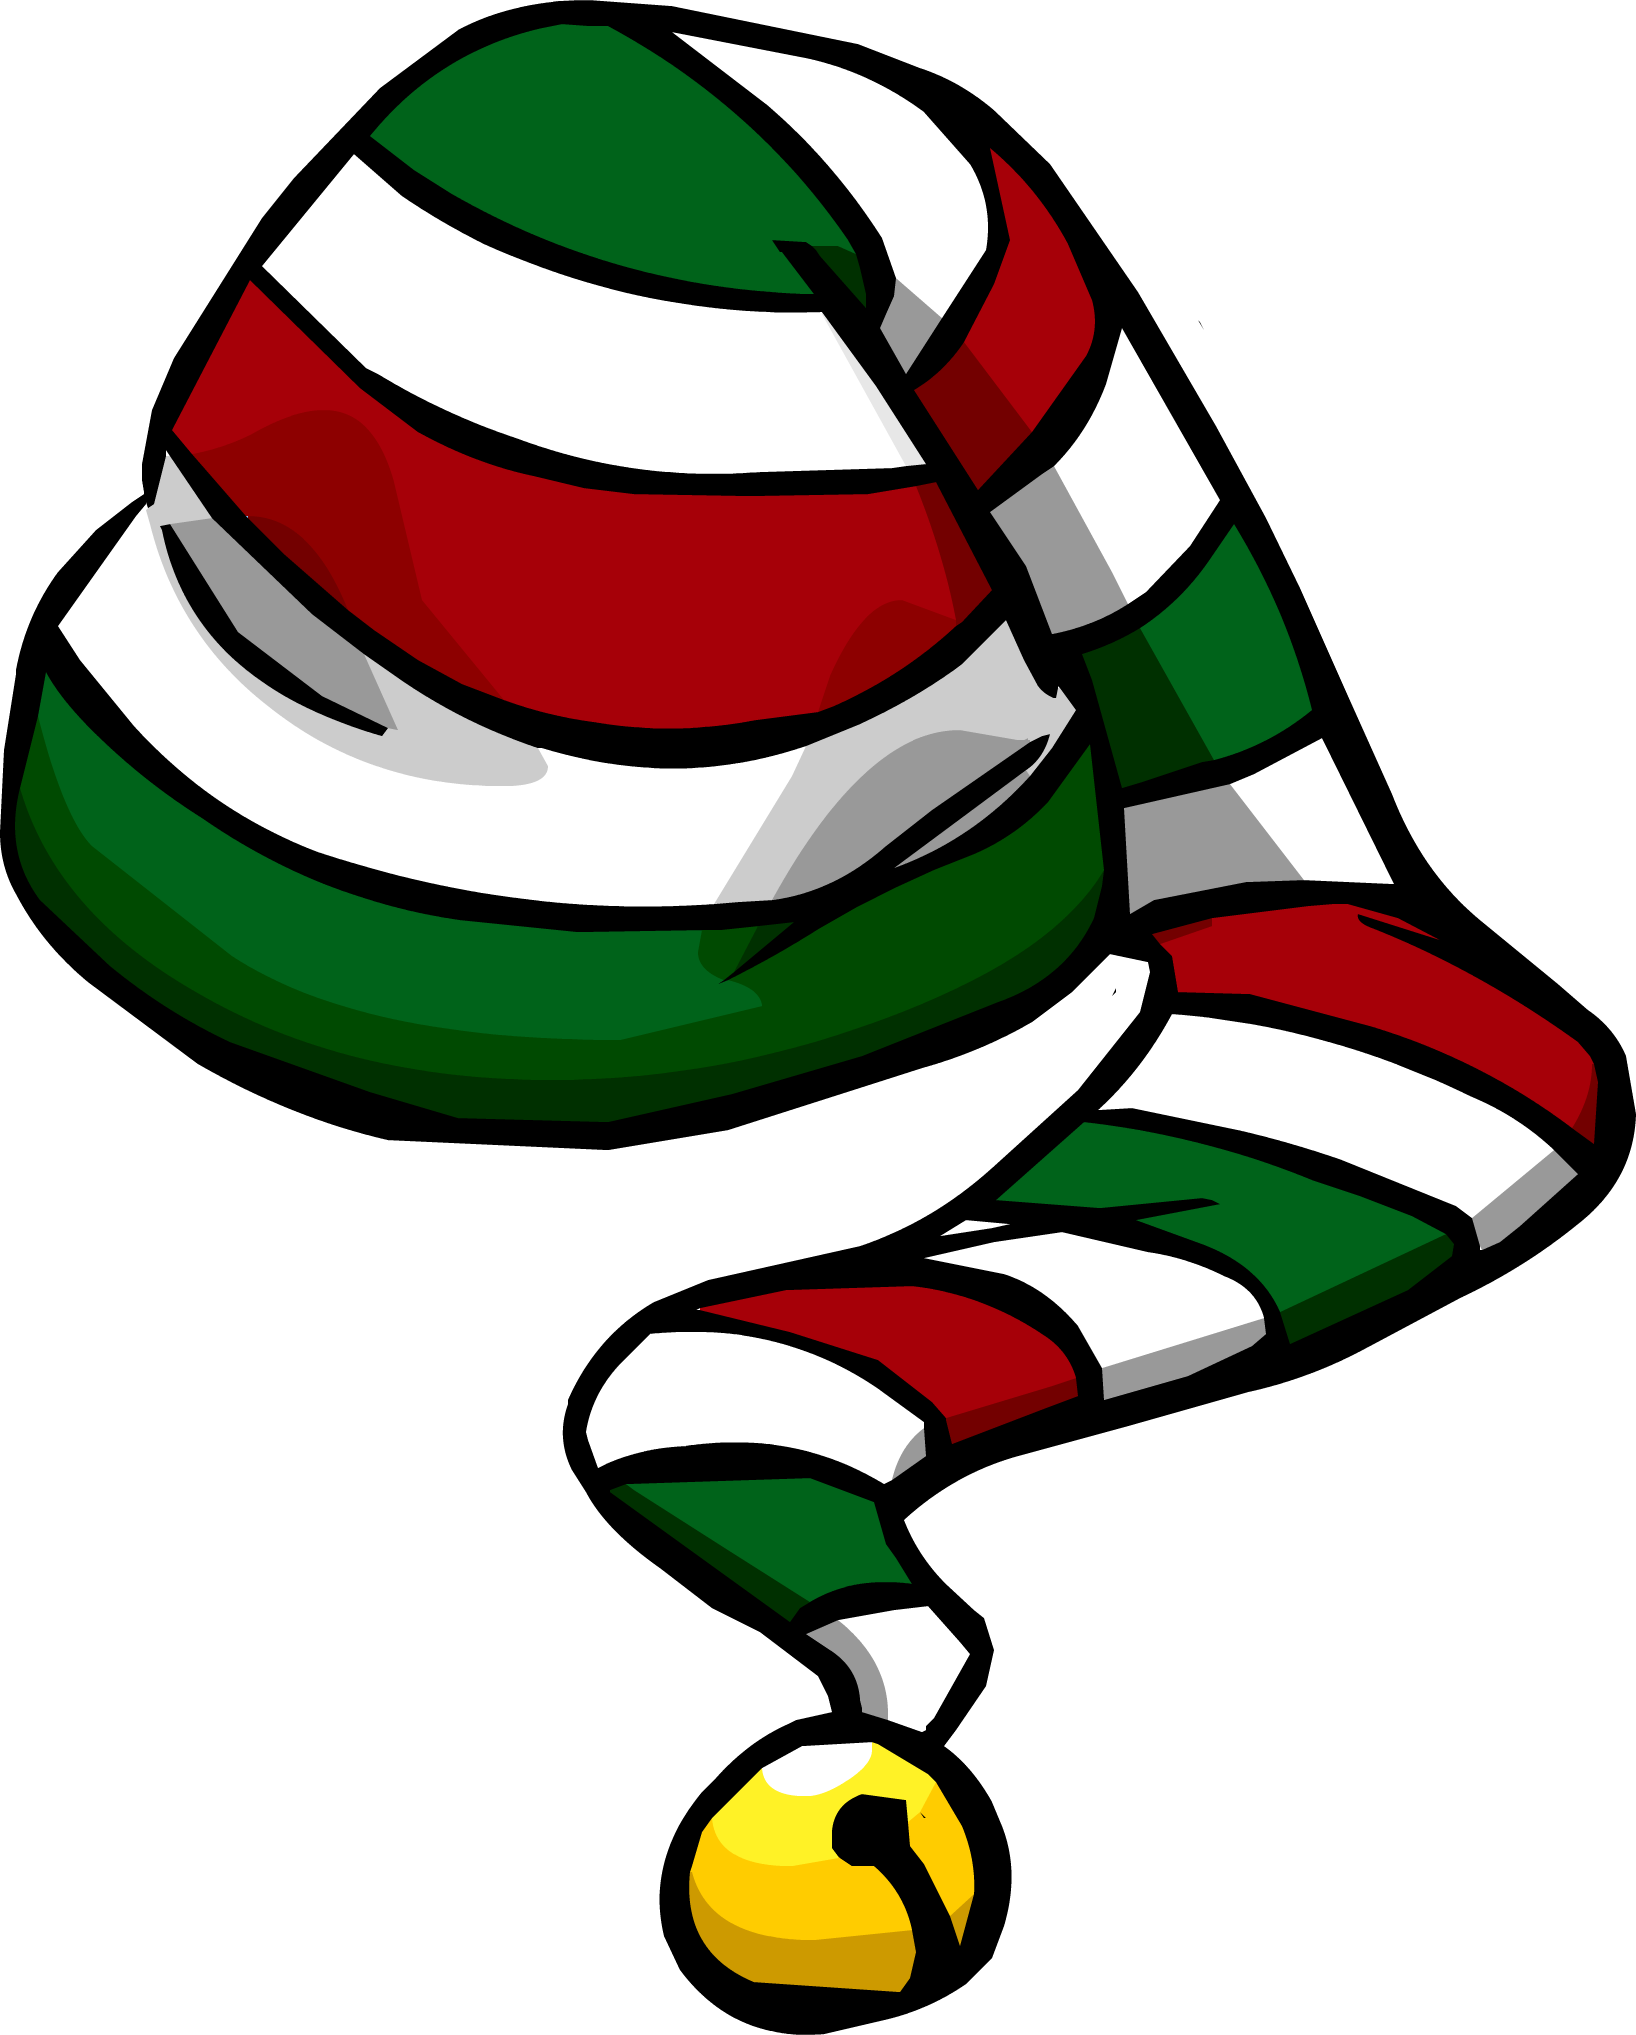 Mail clipart received. Candy cane hat club